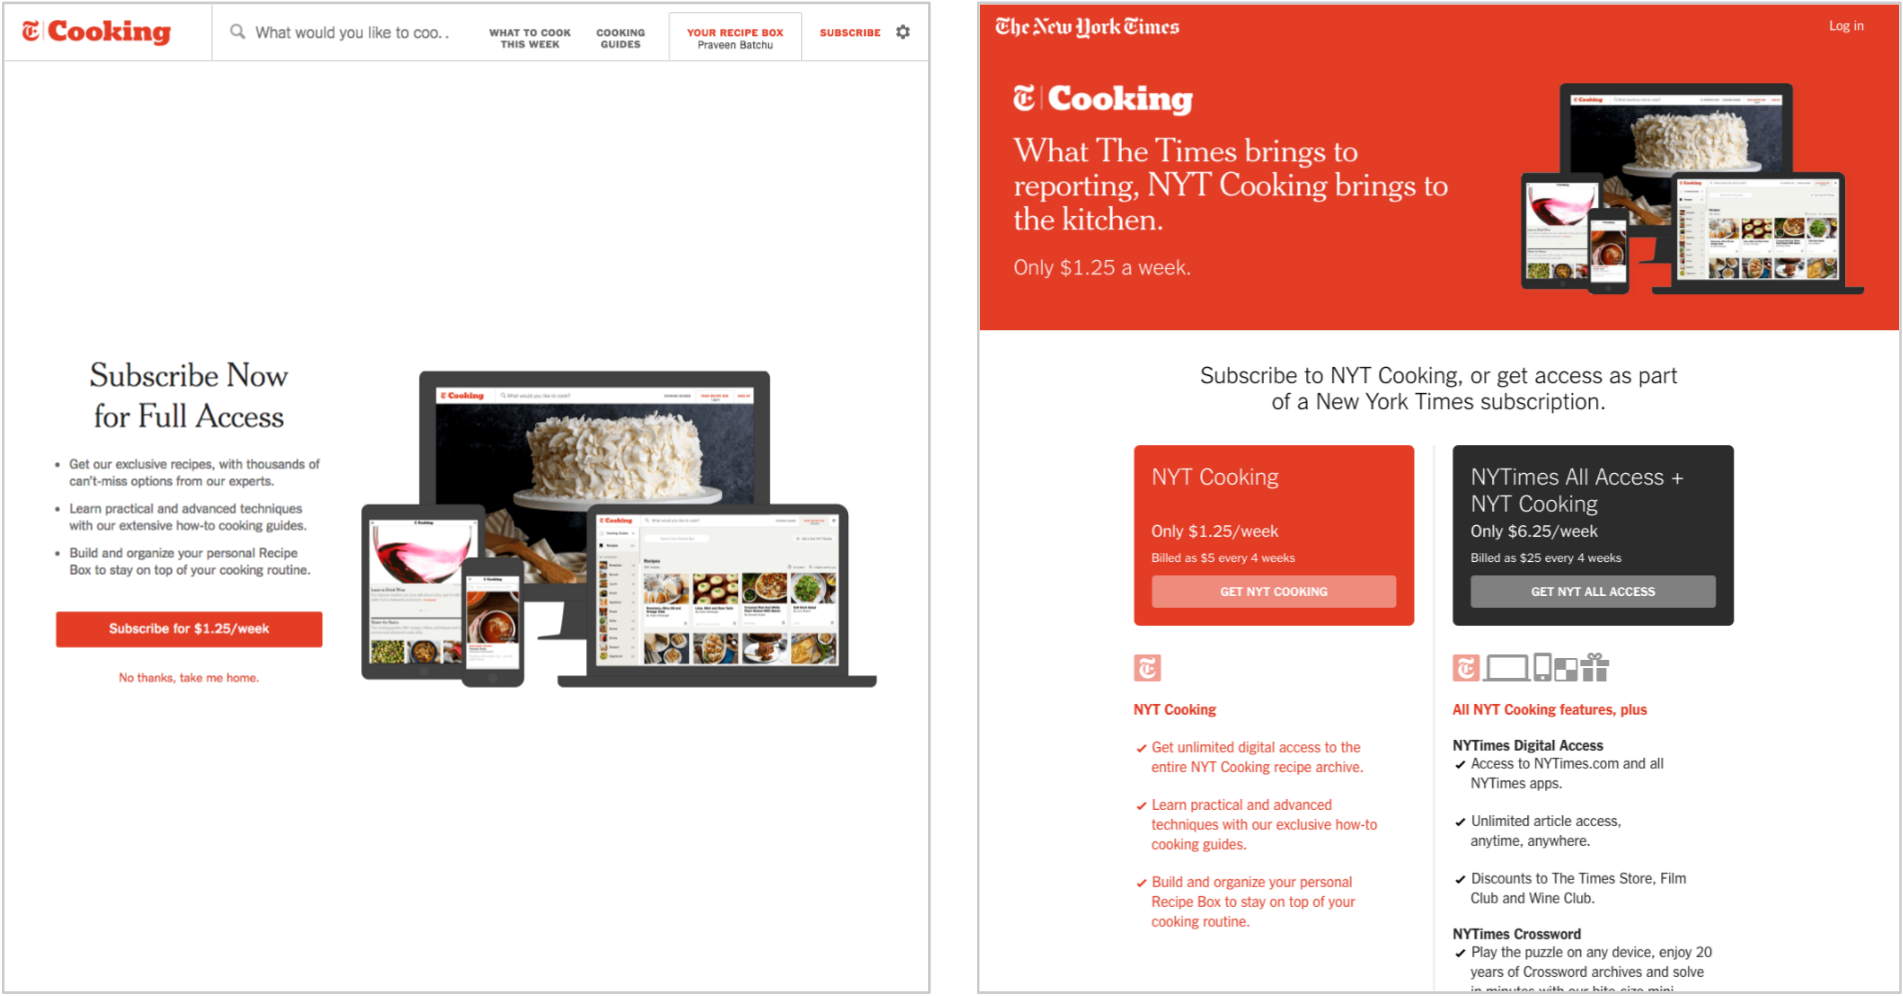 After a free trial, users are presented with a paywall if they try to access a non-featured recipe or a premium feature.